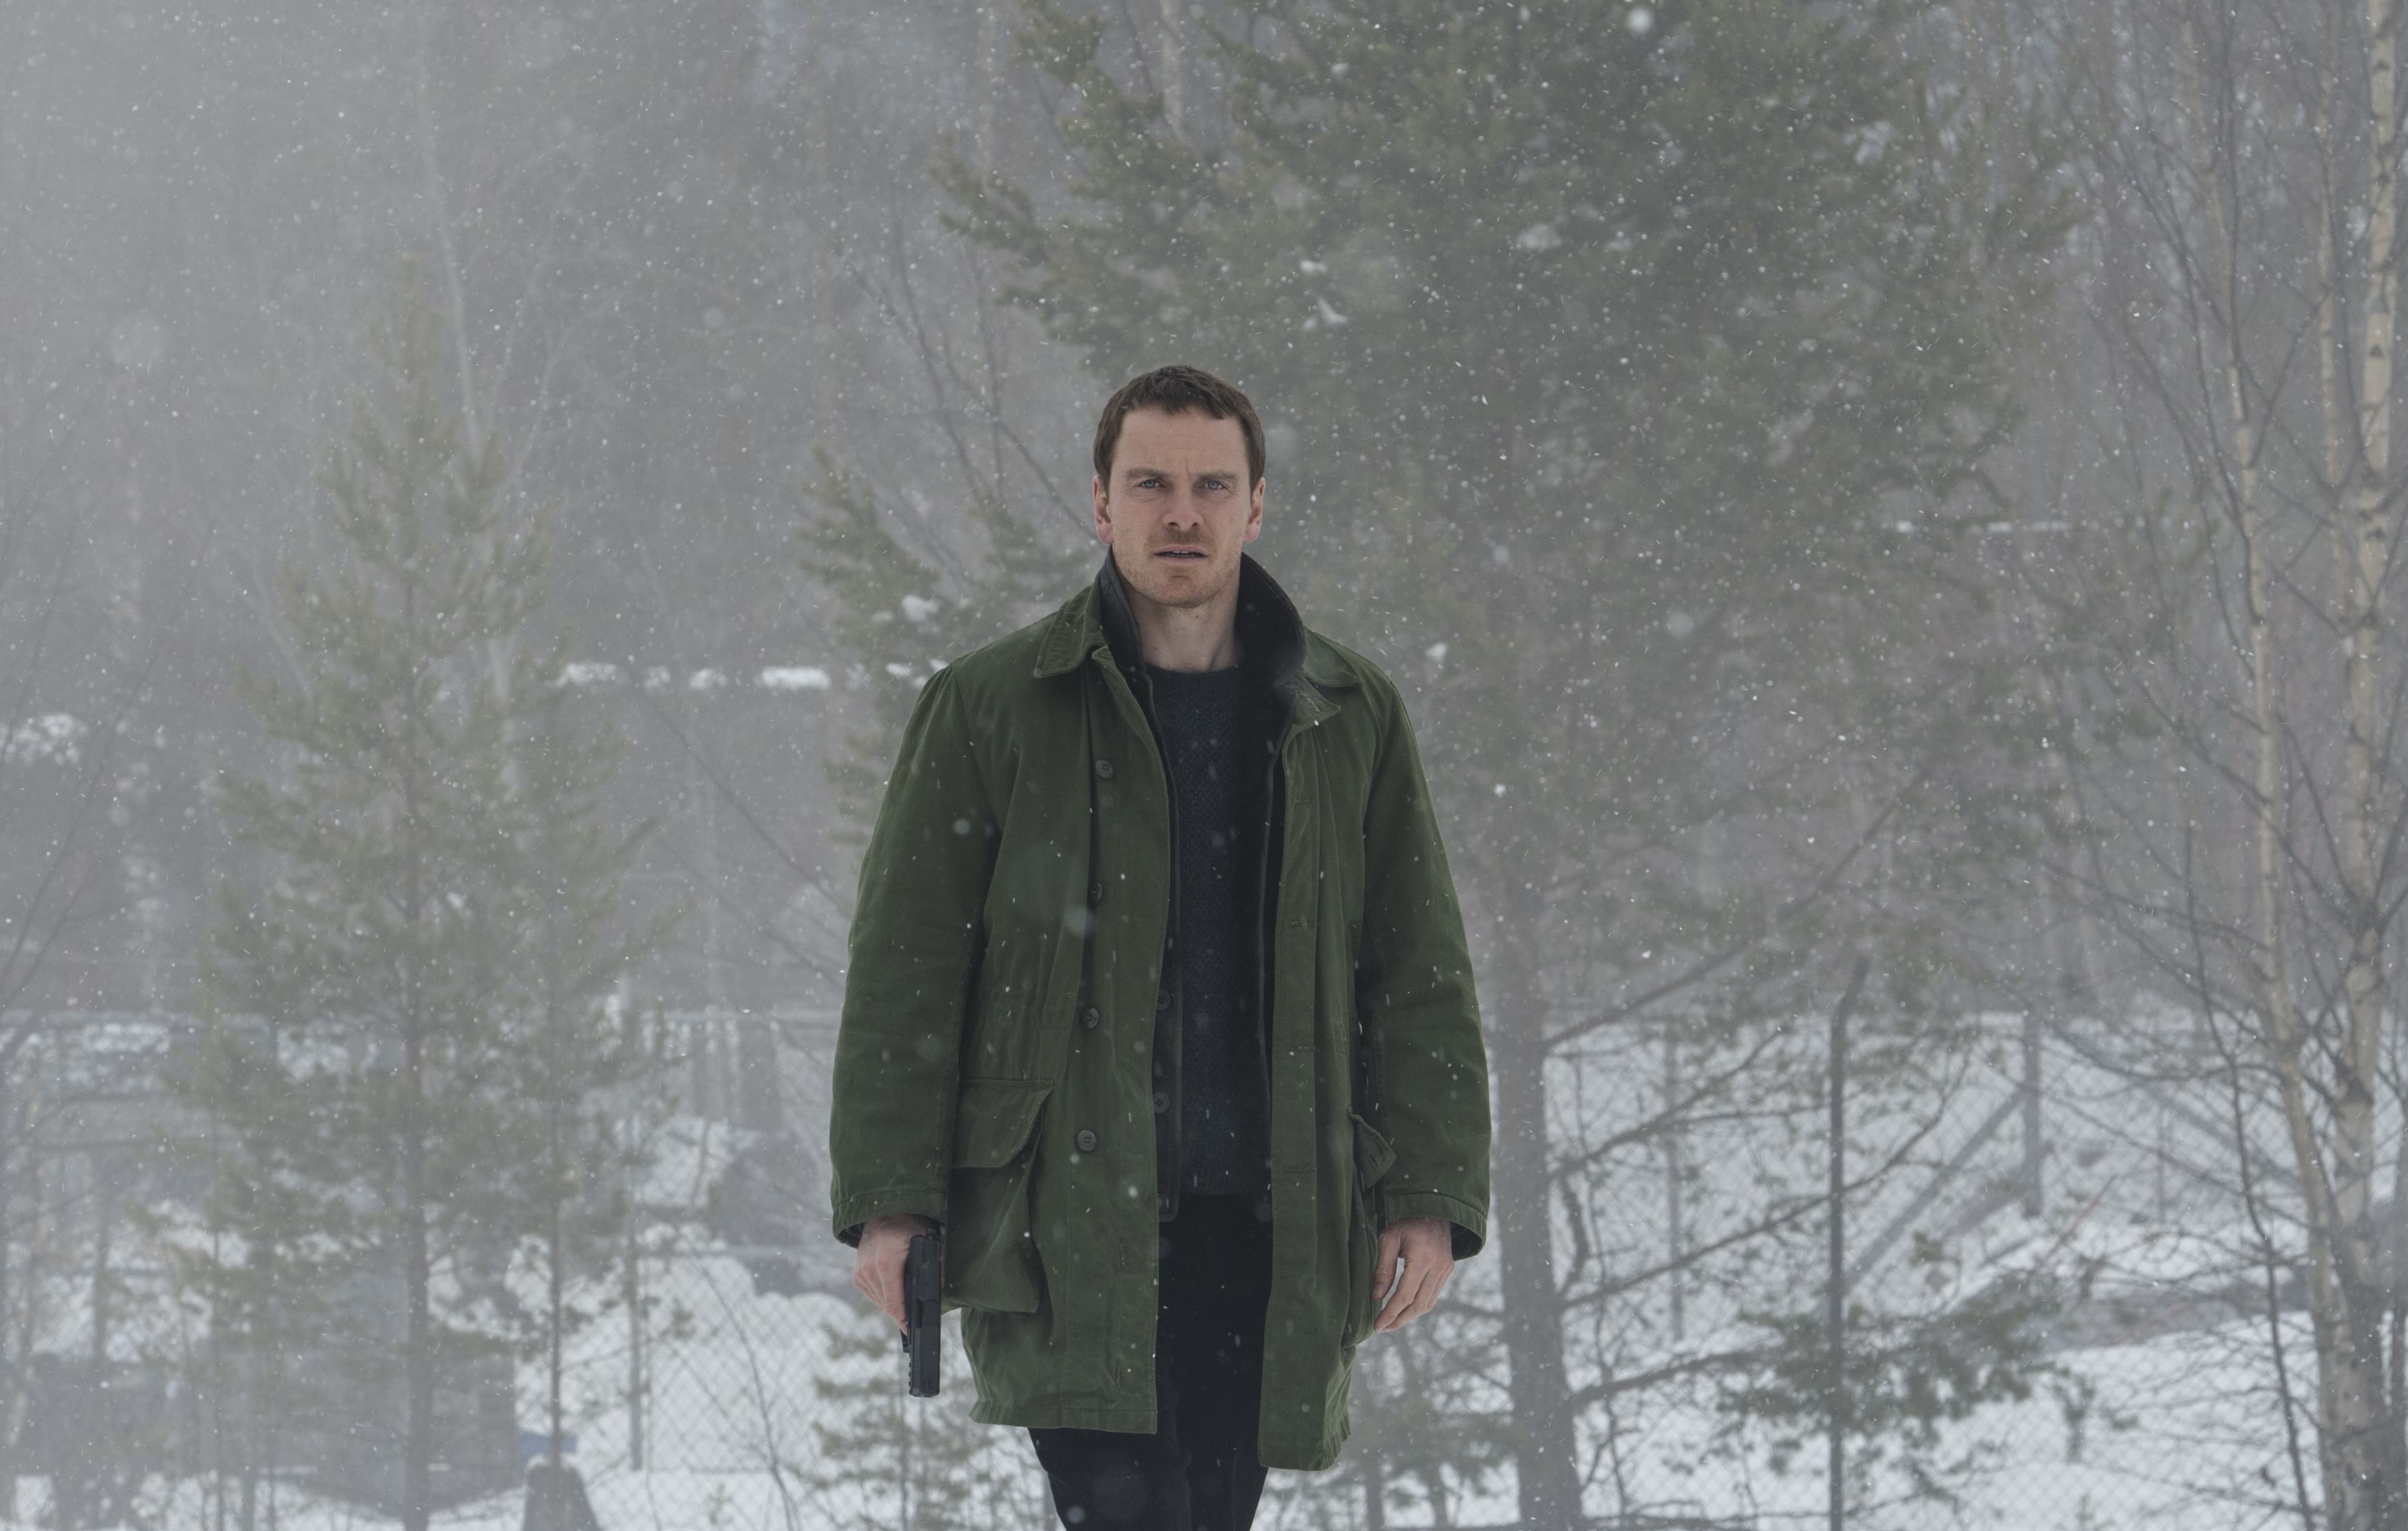 Movie Review - 'The Snowman'